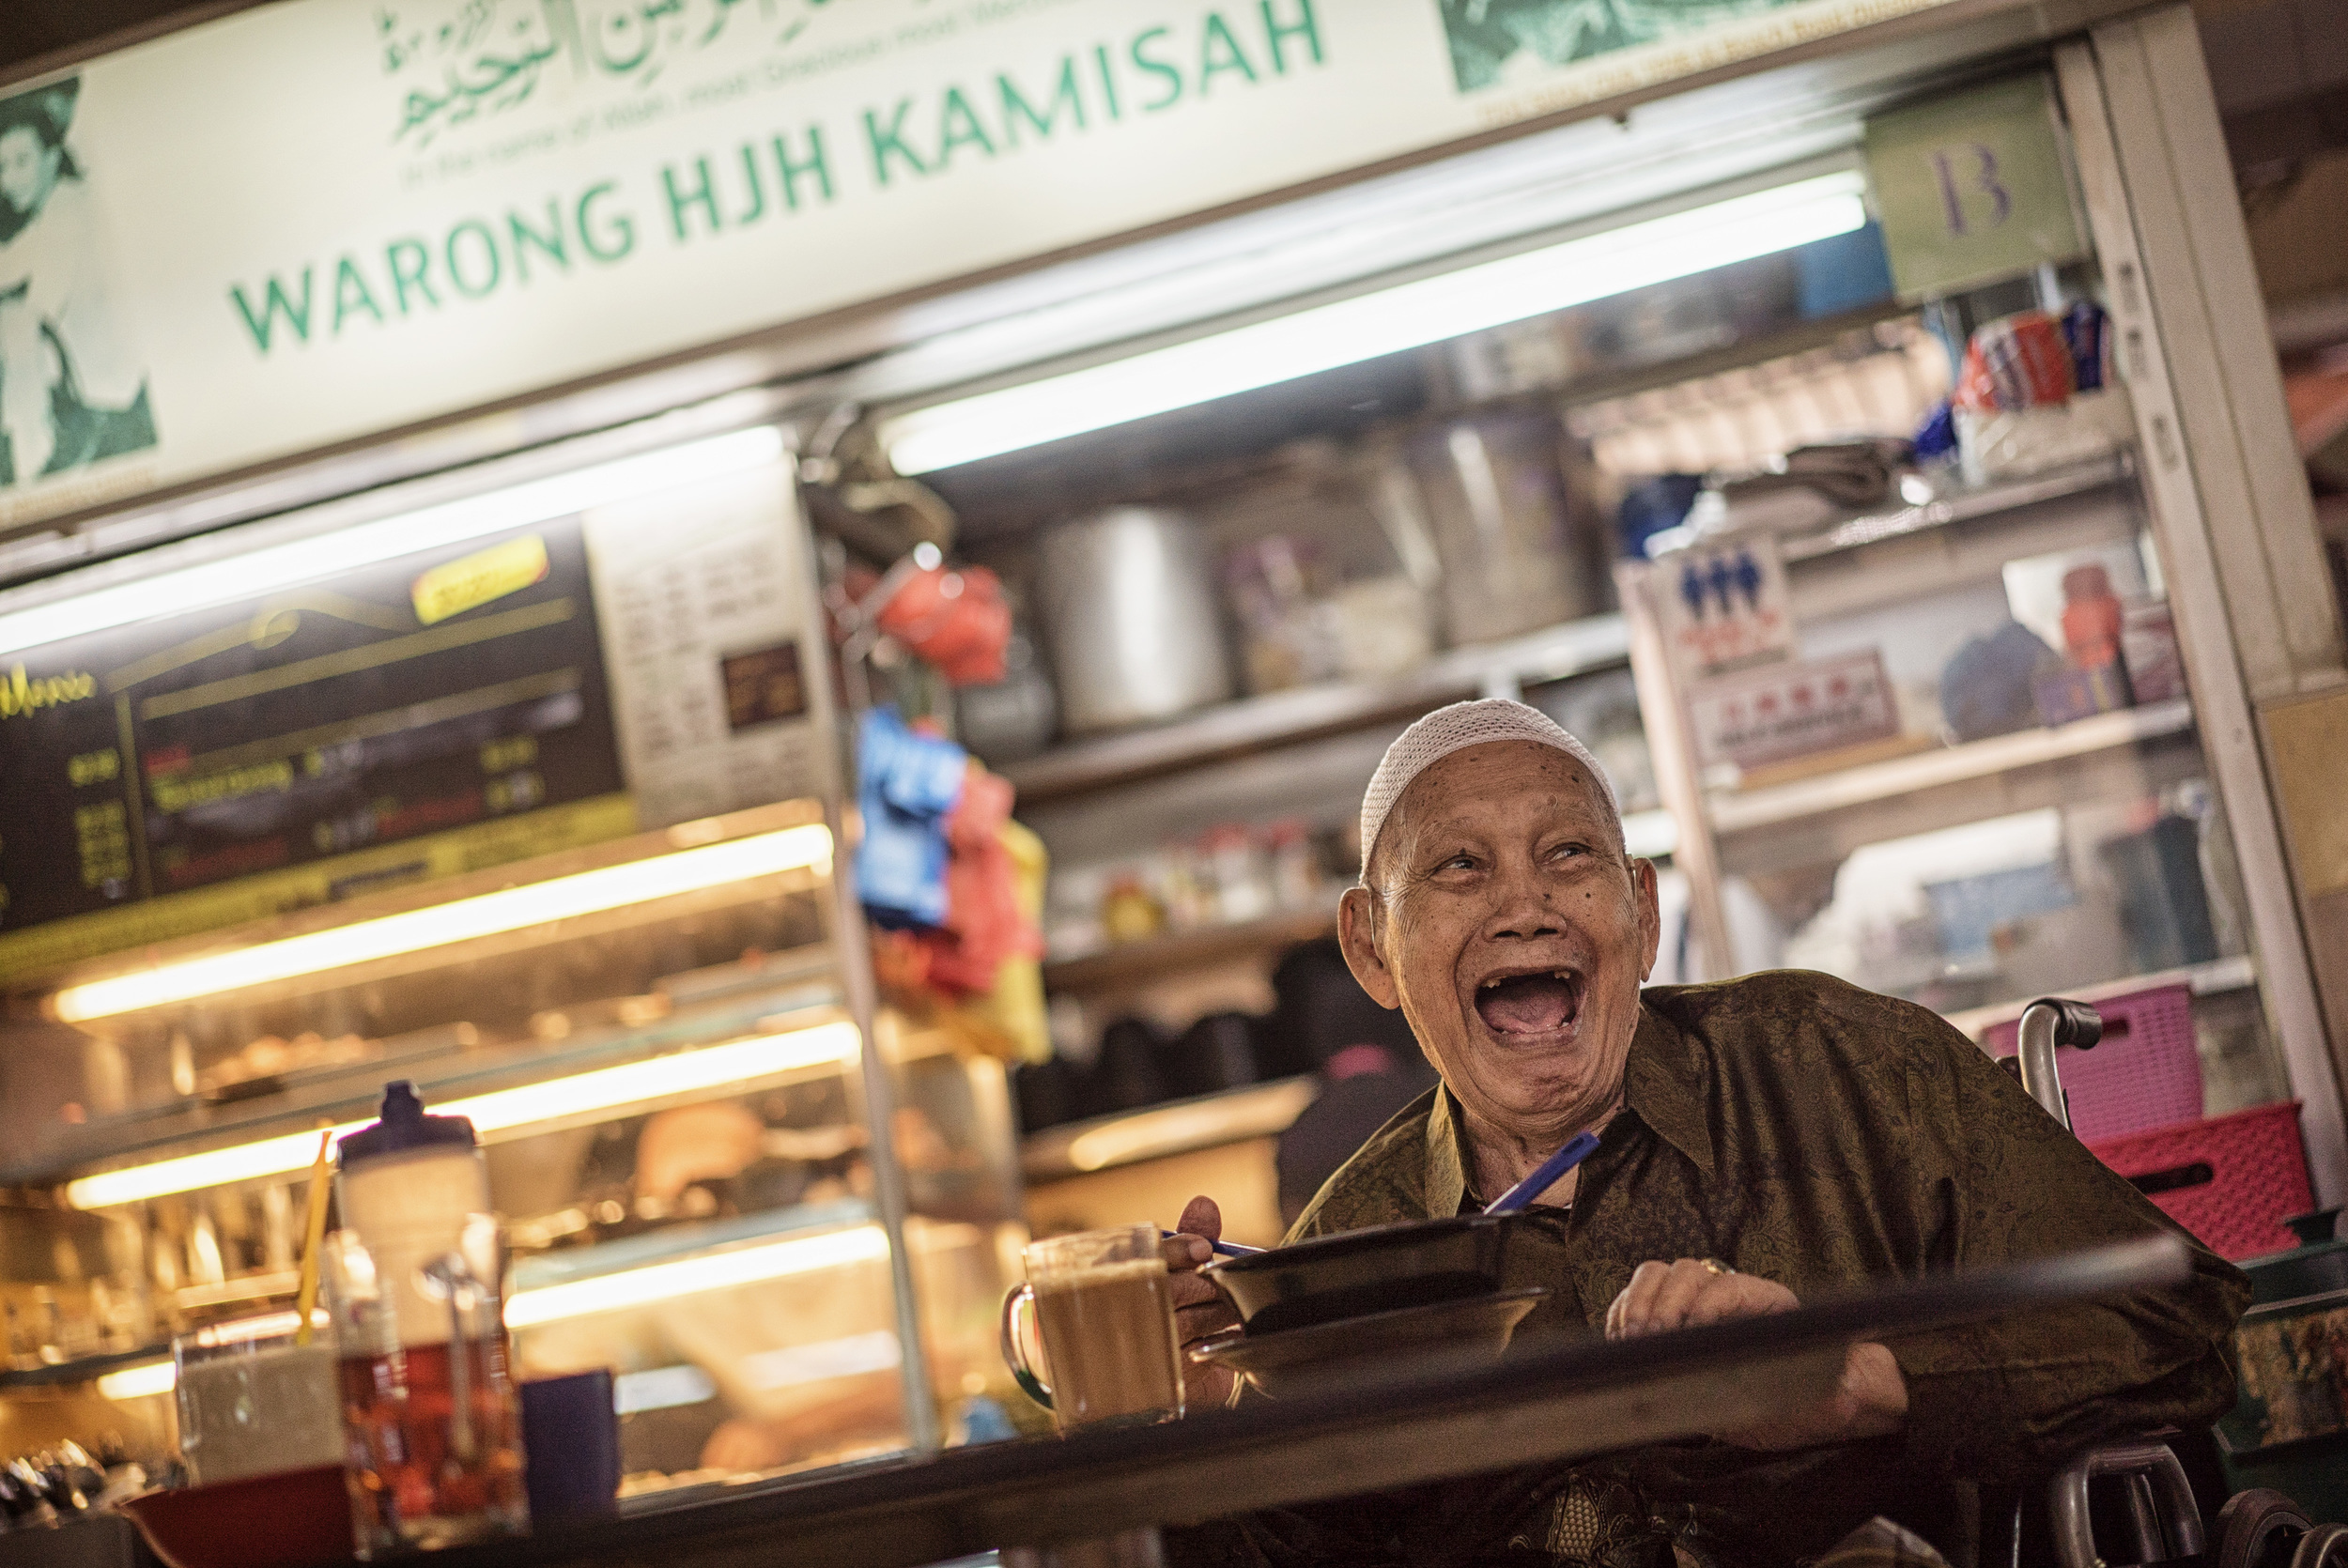 Ngalirdjo Mungin started hawking satay on the streets. Like thousands of other hawkers, he moved to a stall in a food centre in the early 1970s which is now operated by one of his sons.